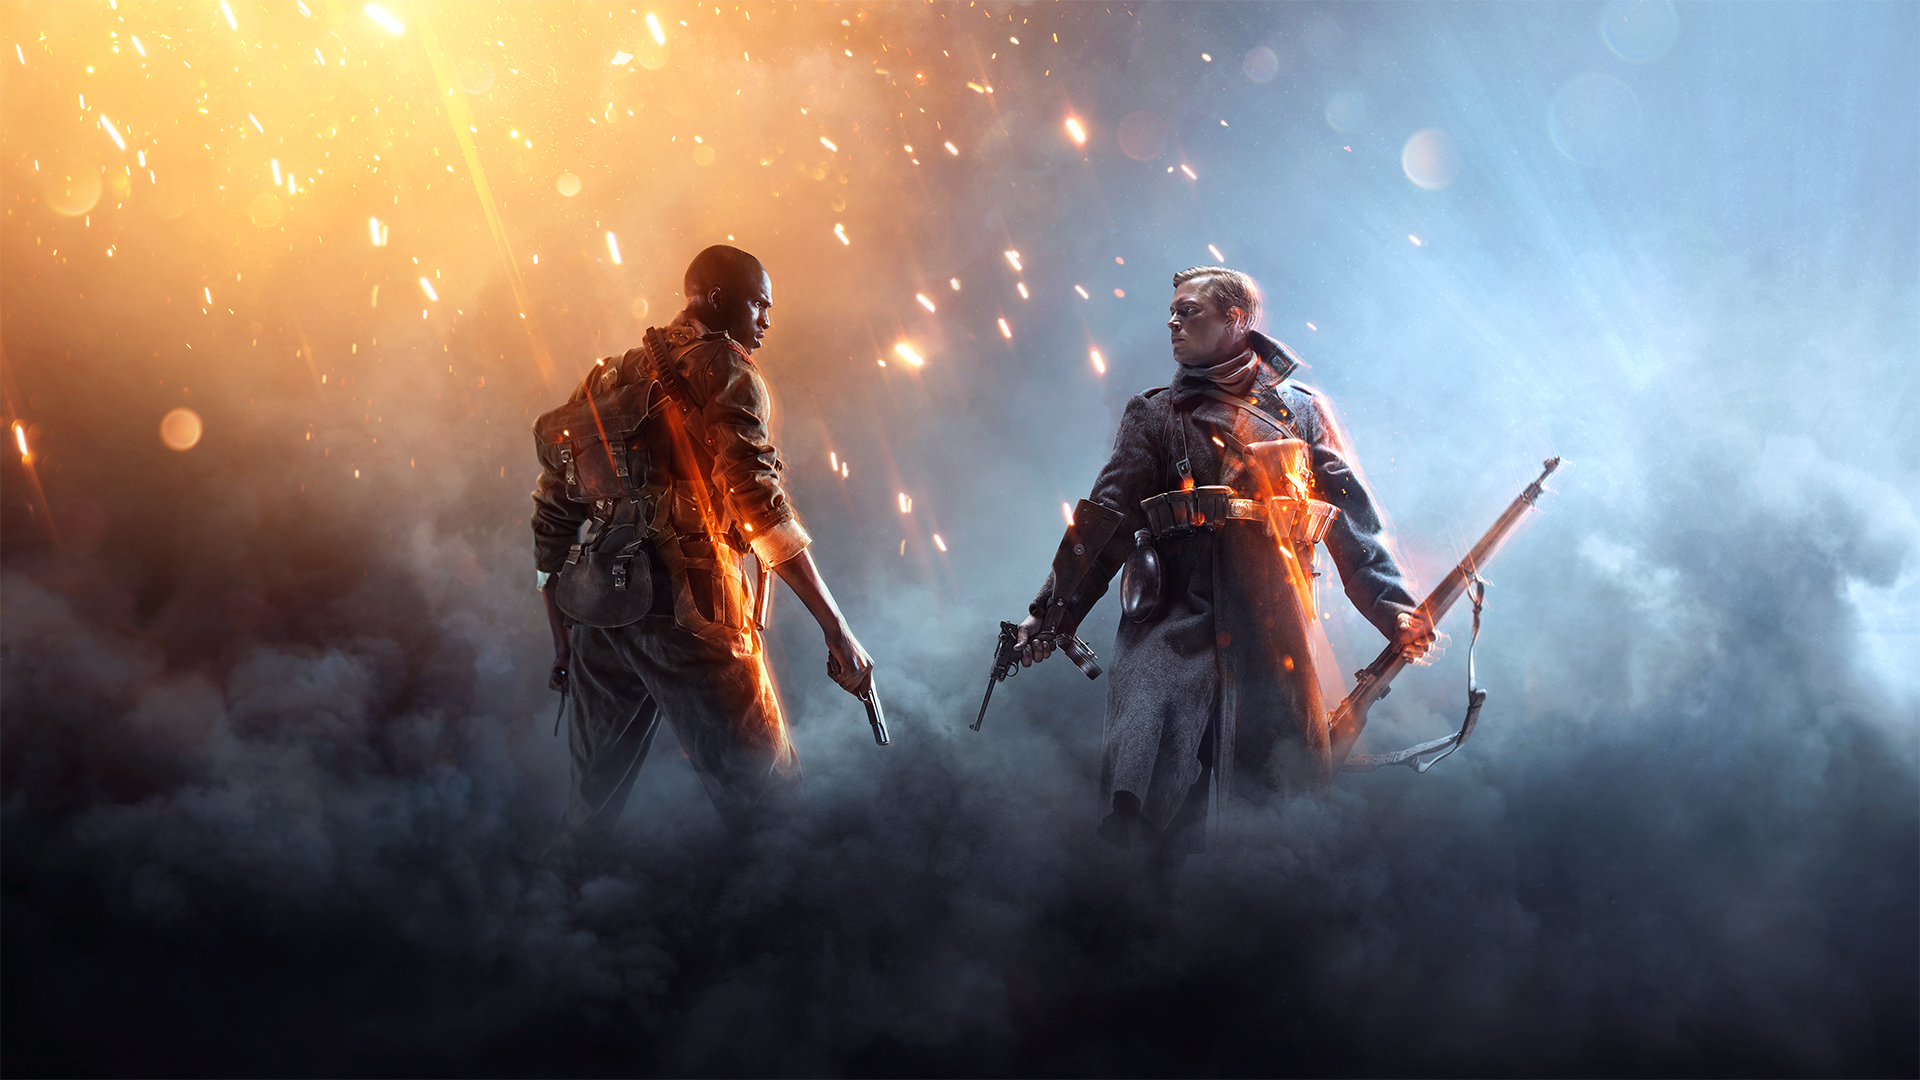 Turbo Wallpapers Battlefield 1 - MaximumWallHD KF54